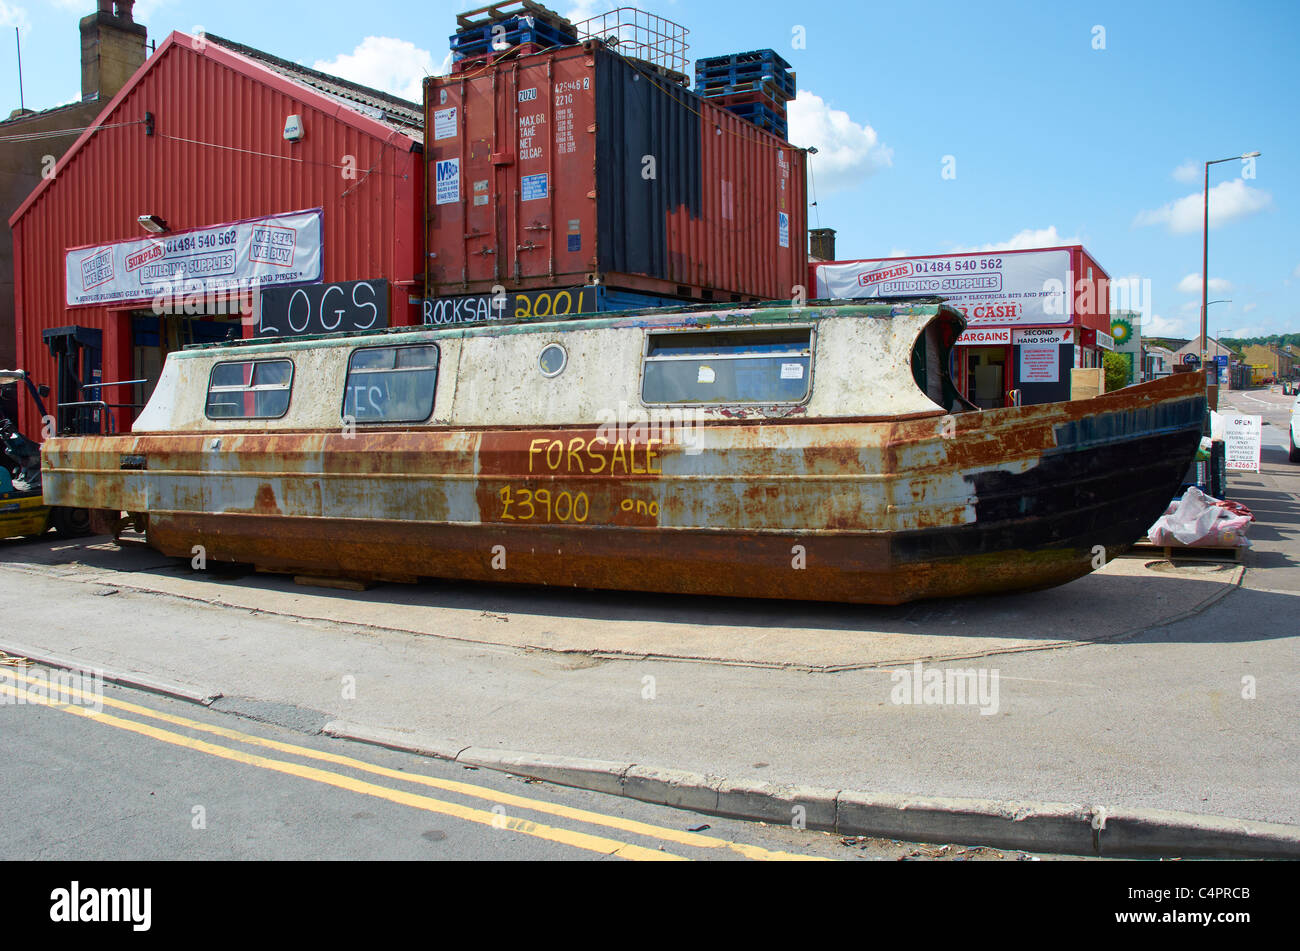 Canal barge for sale (on the street) Stock Photo